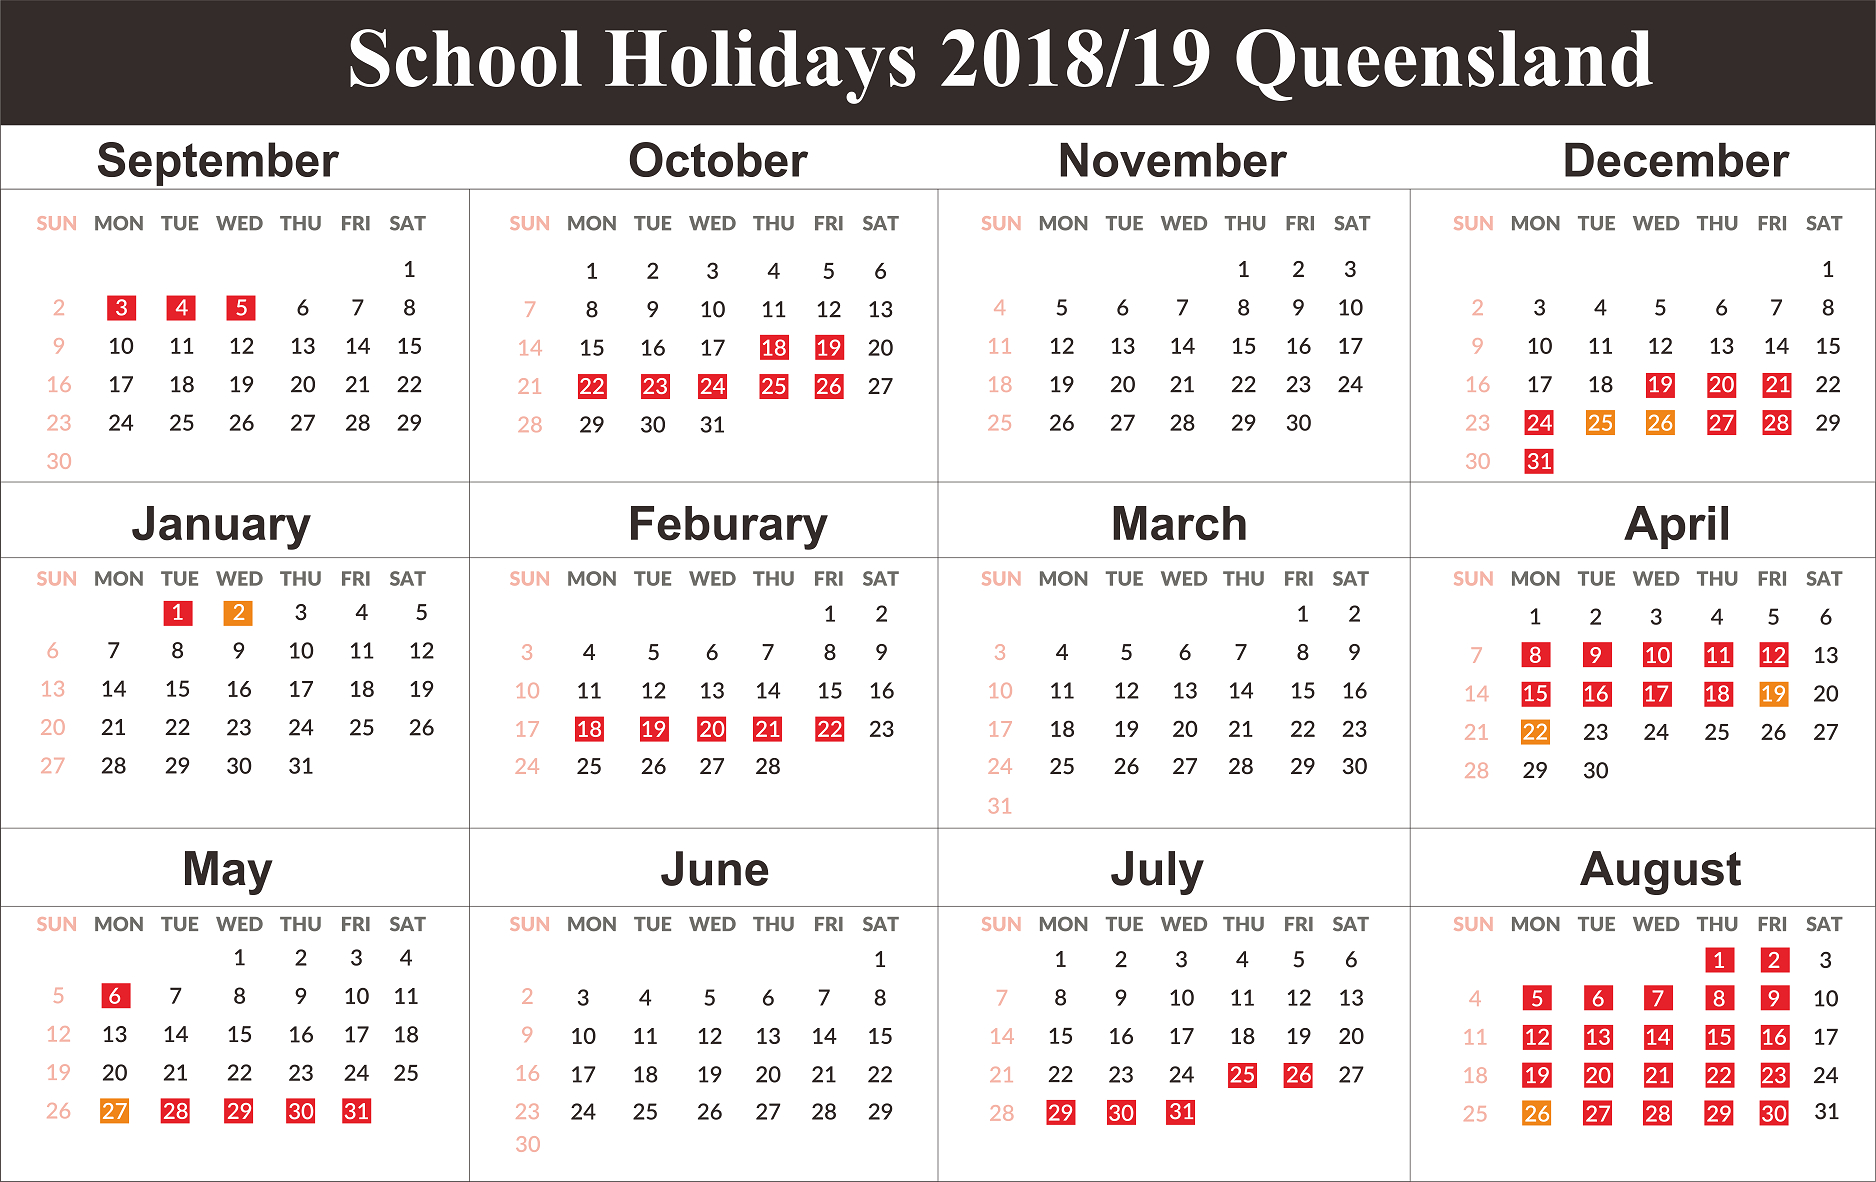 Free Qld (Queensland) School Holidays Calendar 2018-2019 | Free Calendar 2019 Qld School Holidays